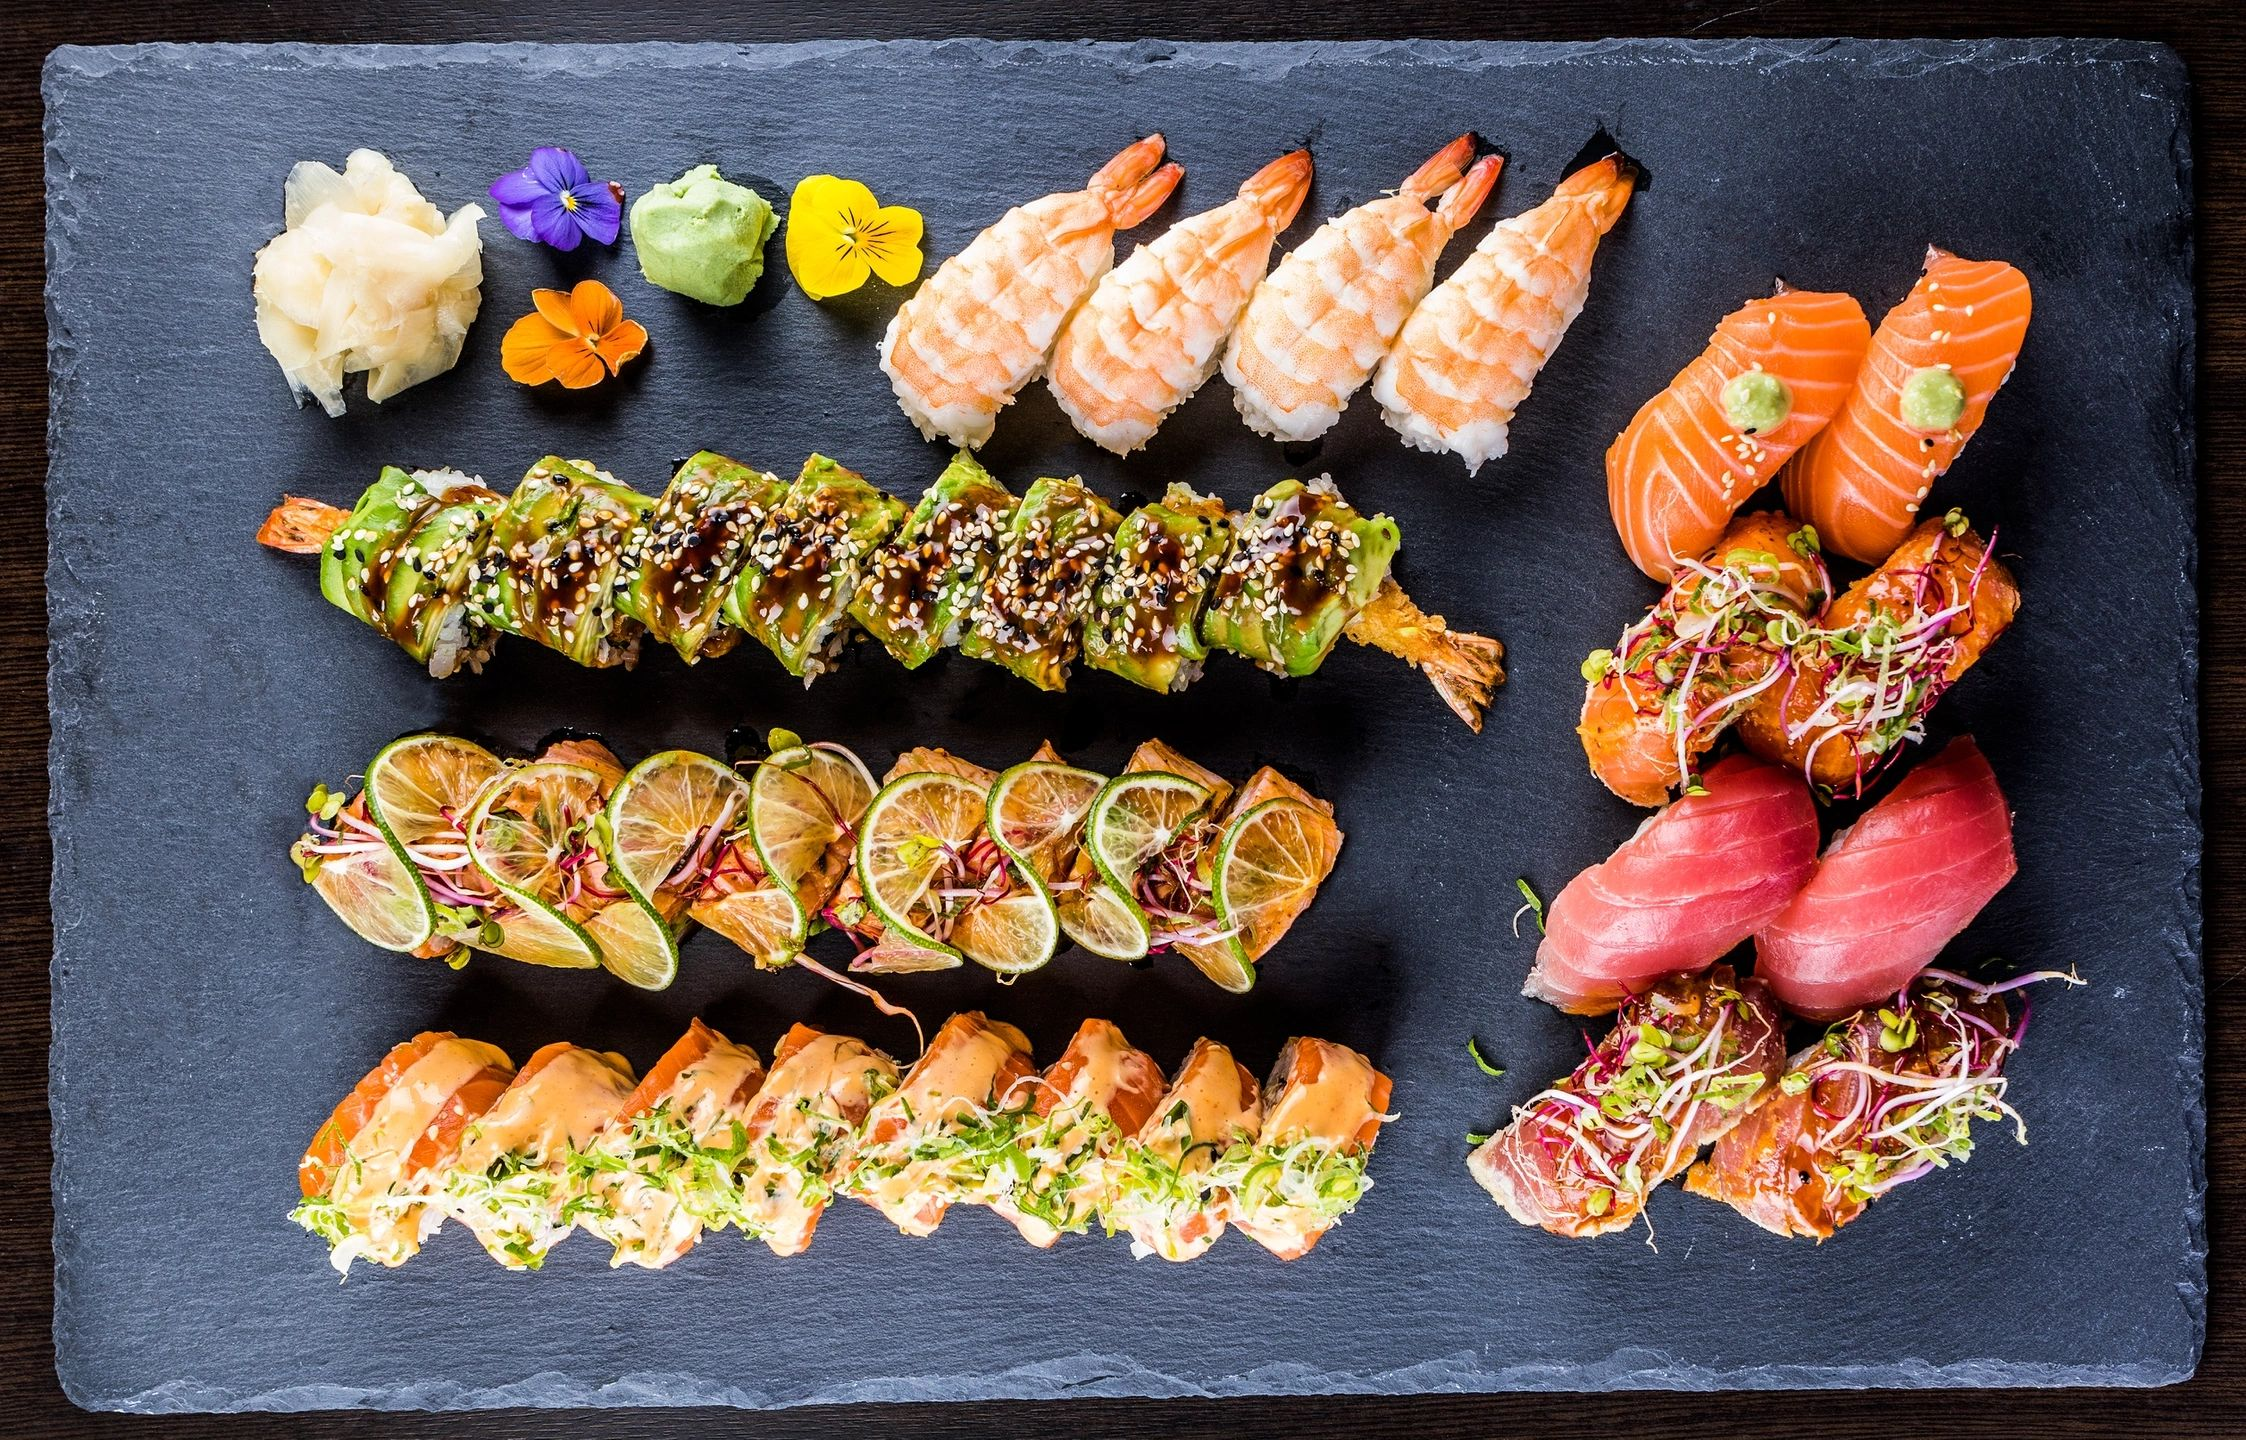 Platter with various types and pieces of sushi